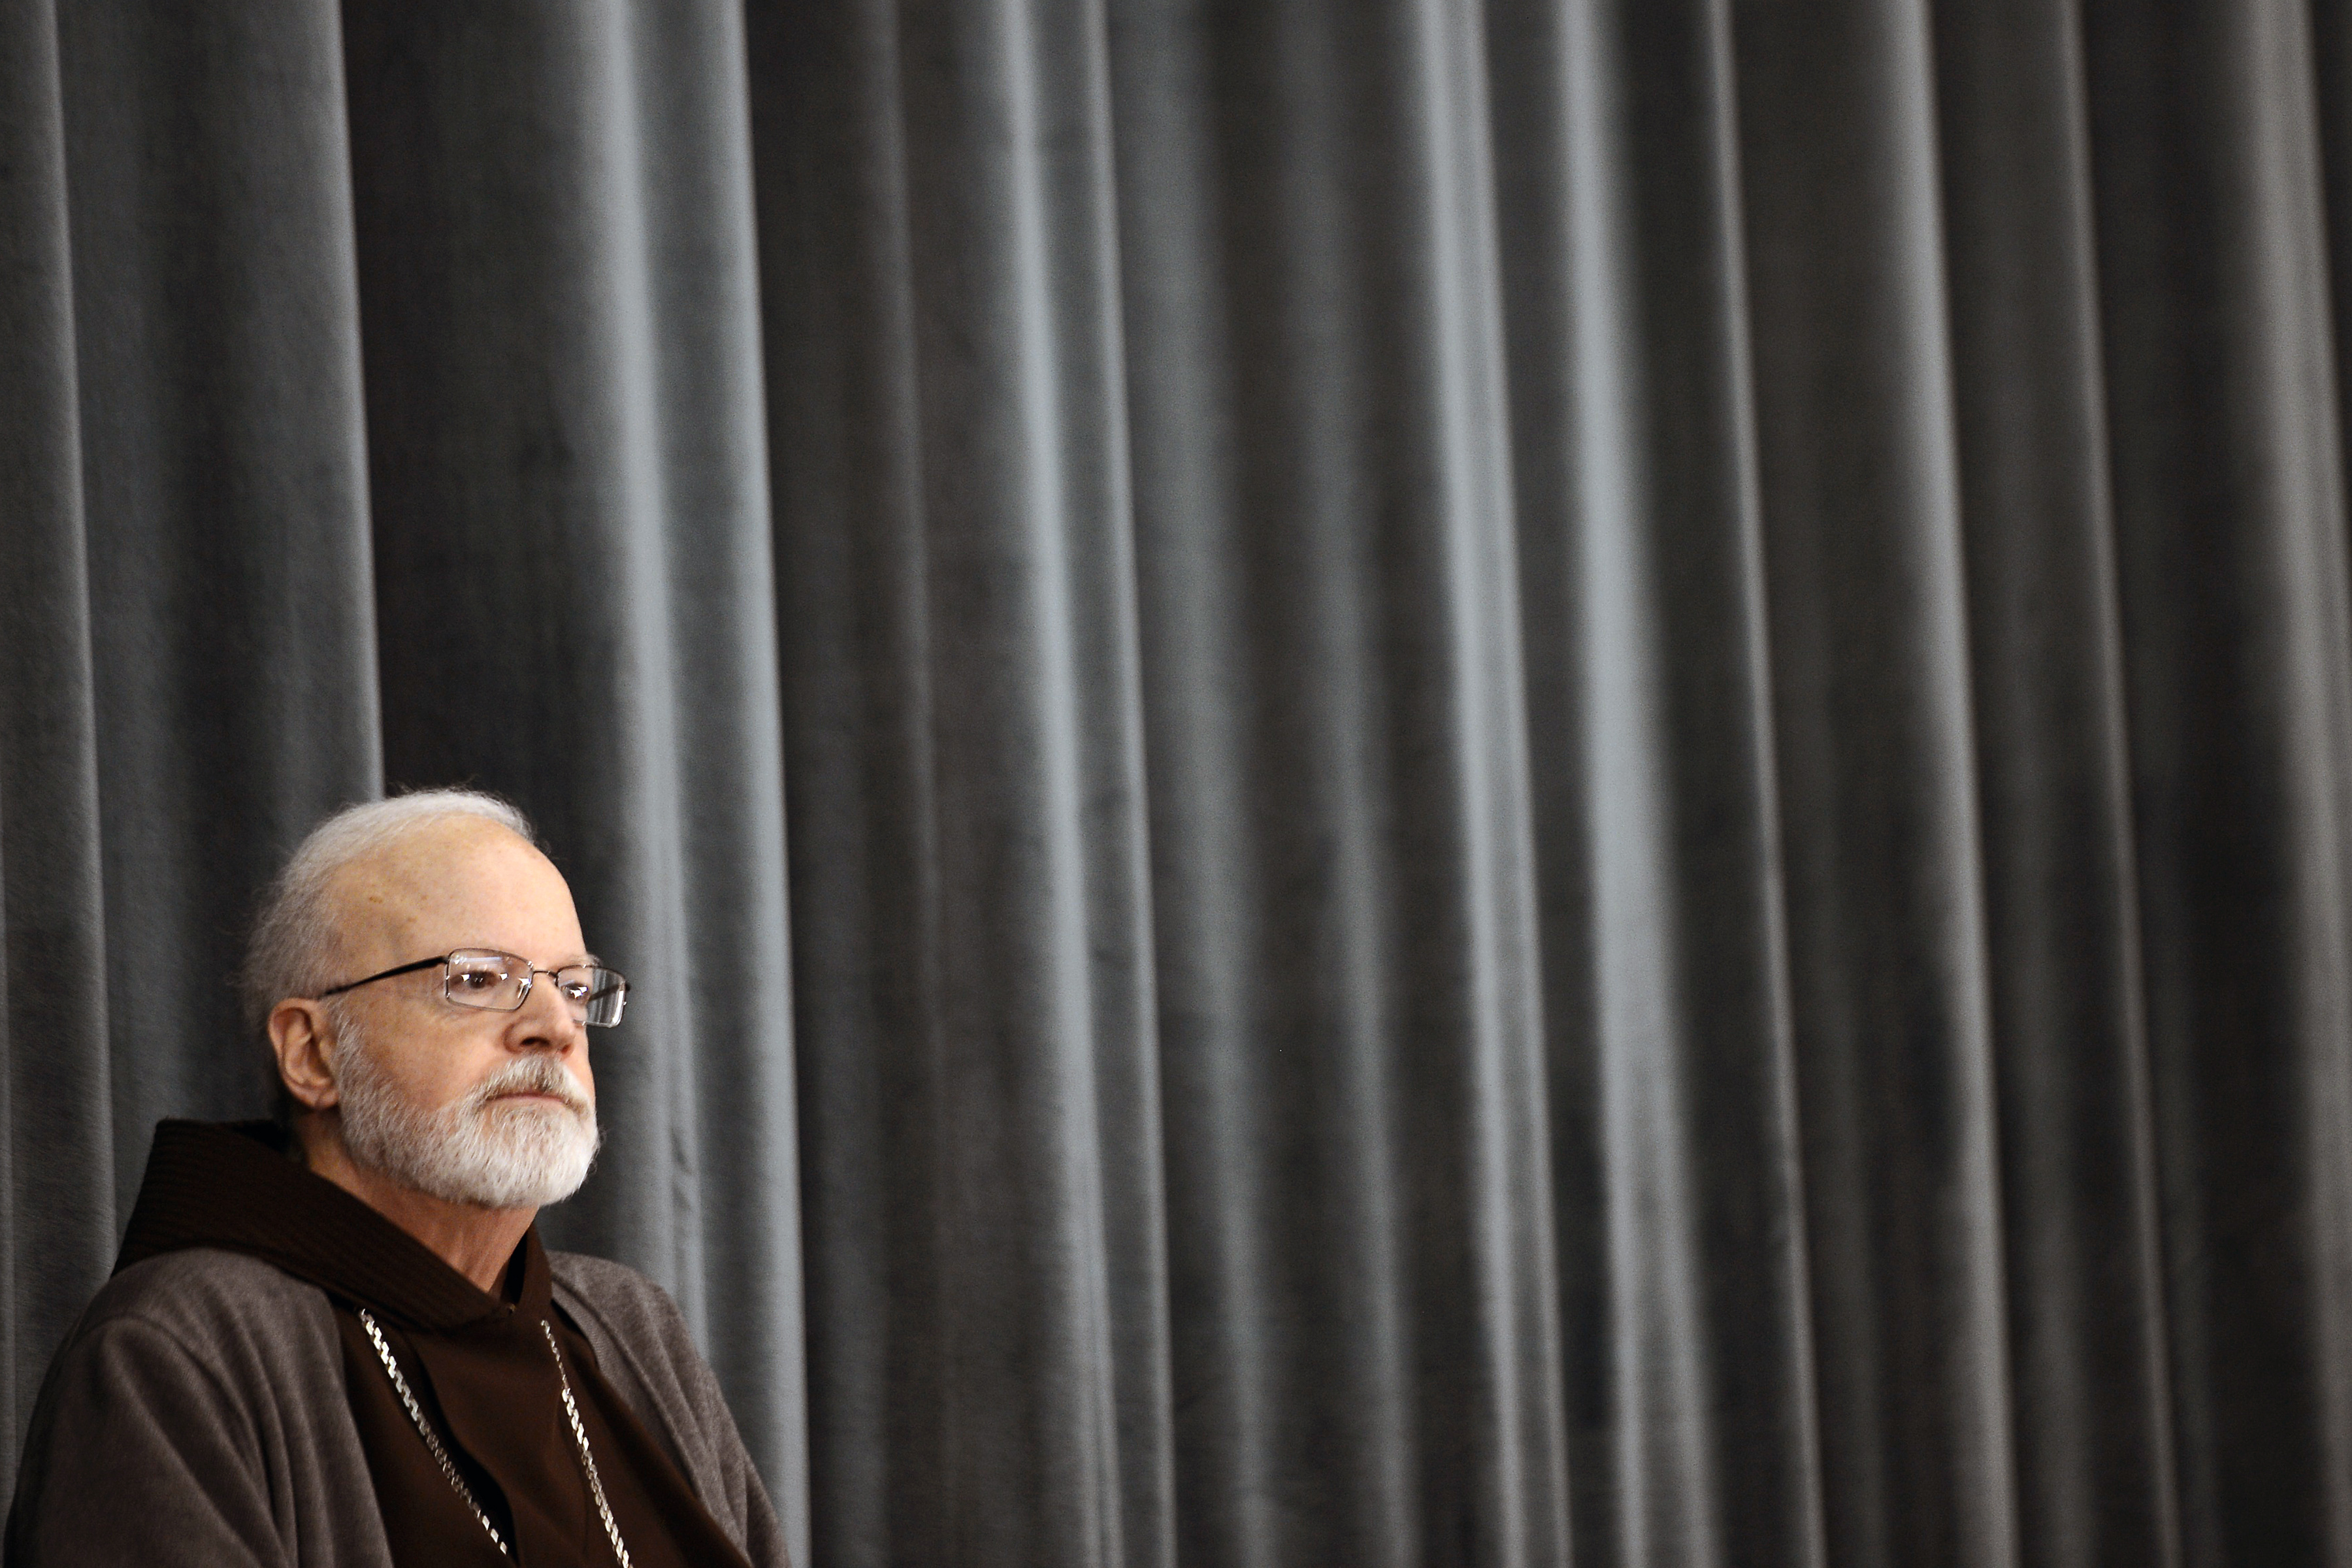 Cardinal Sean Patrick O'Malley listens during a press conference on March 5, 2013 in Rome.